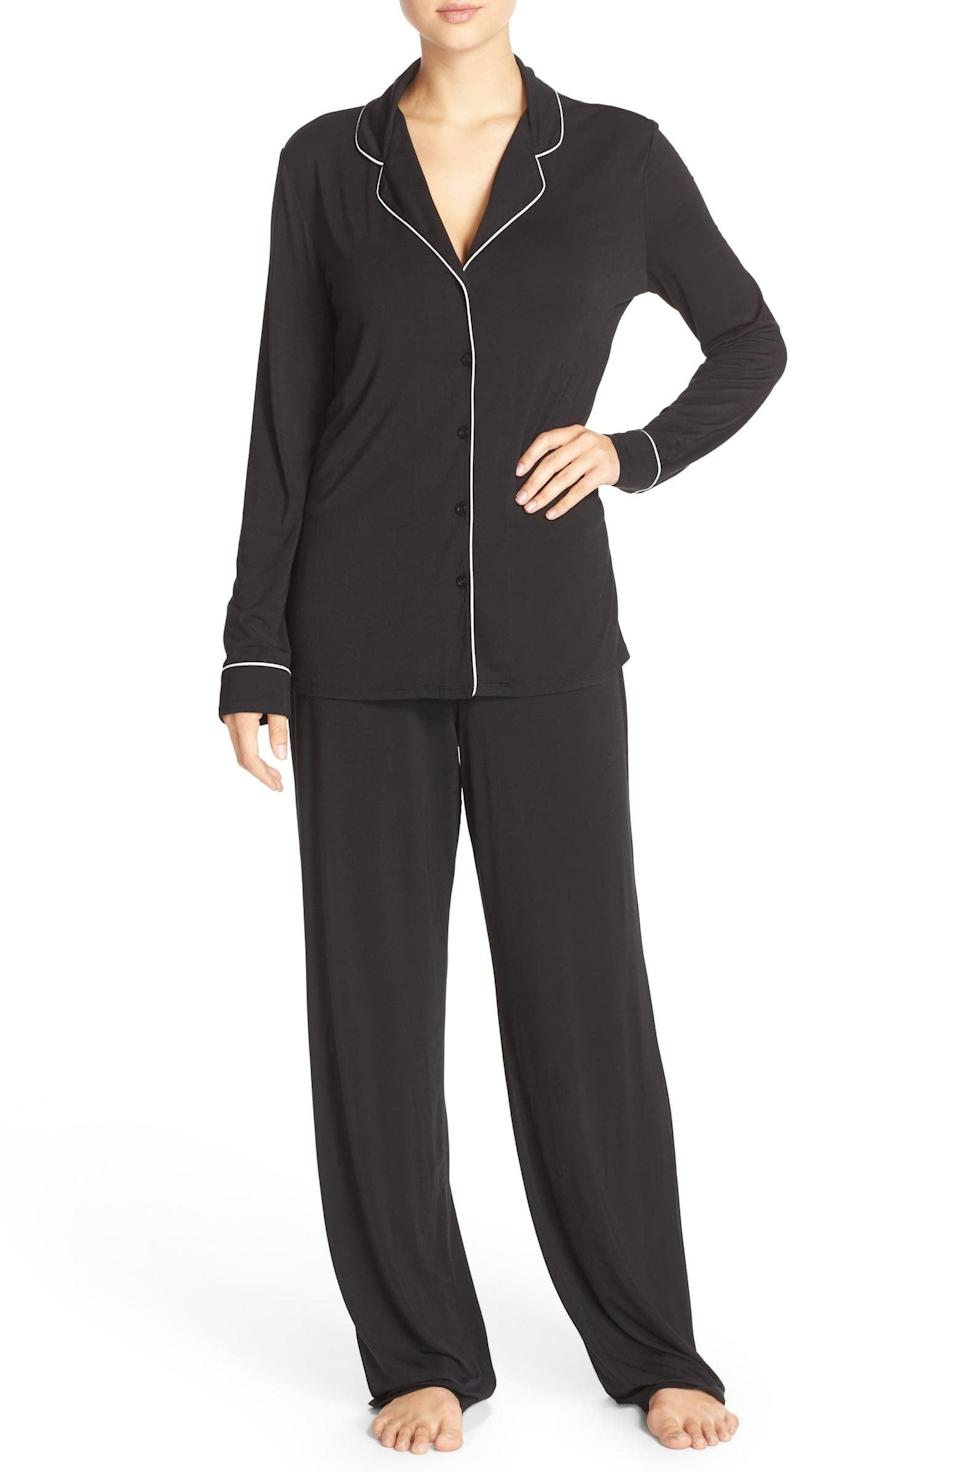 <p>Treat your loved one, or yourself, to these stylish, super-soft <span>Nordstrom Lingerie Moonlight Pajamas</span> ($65). These lightweight and airy pajamas are perfect for getting cozy. It comes in a variety of colors and patterns as well!</p>